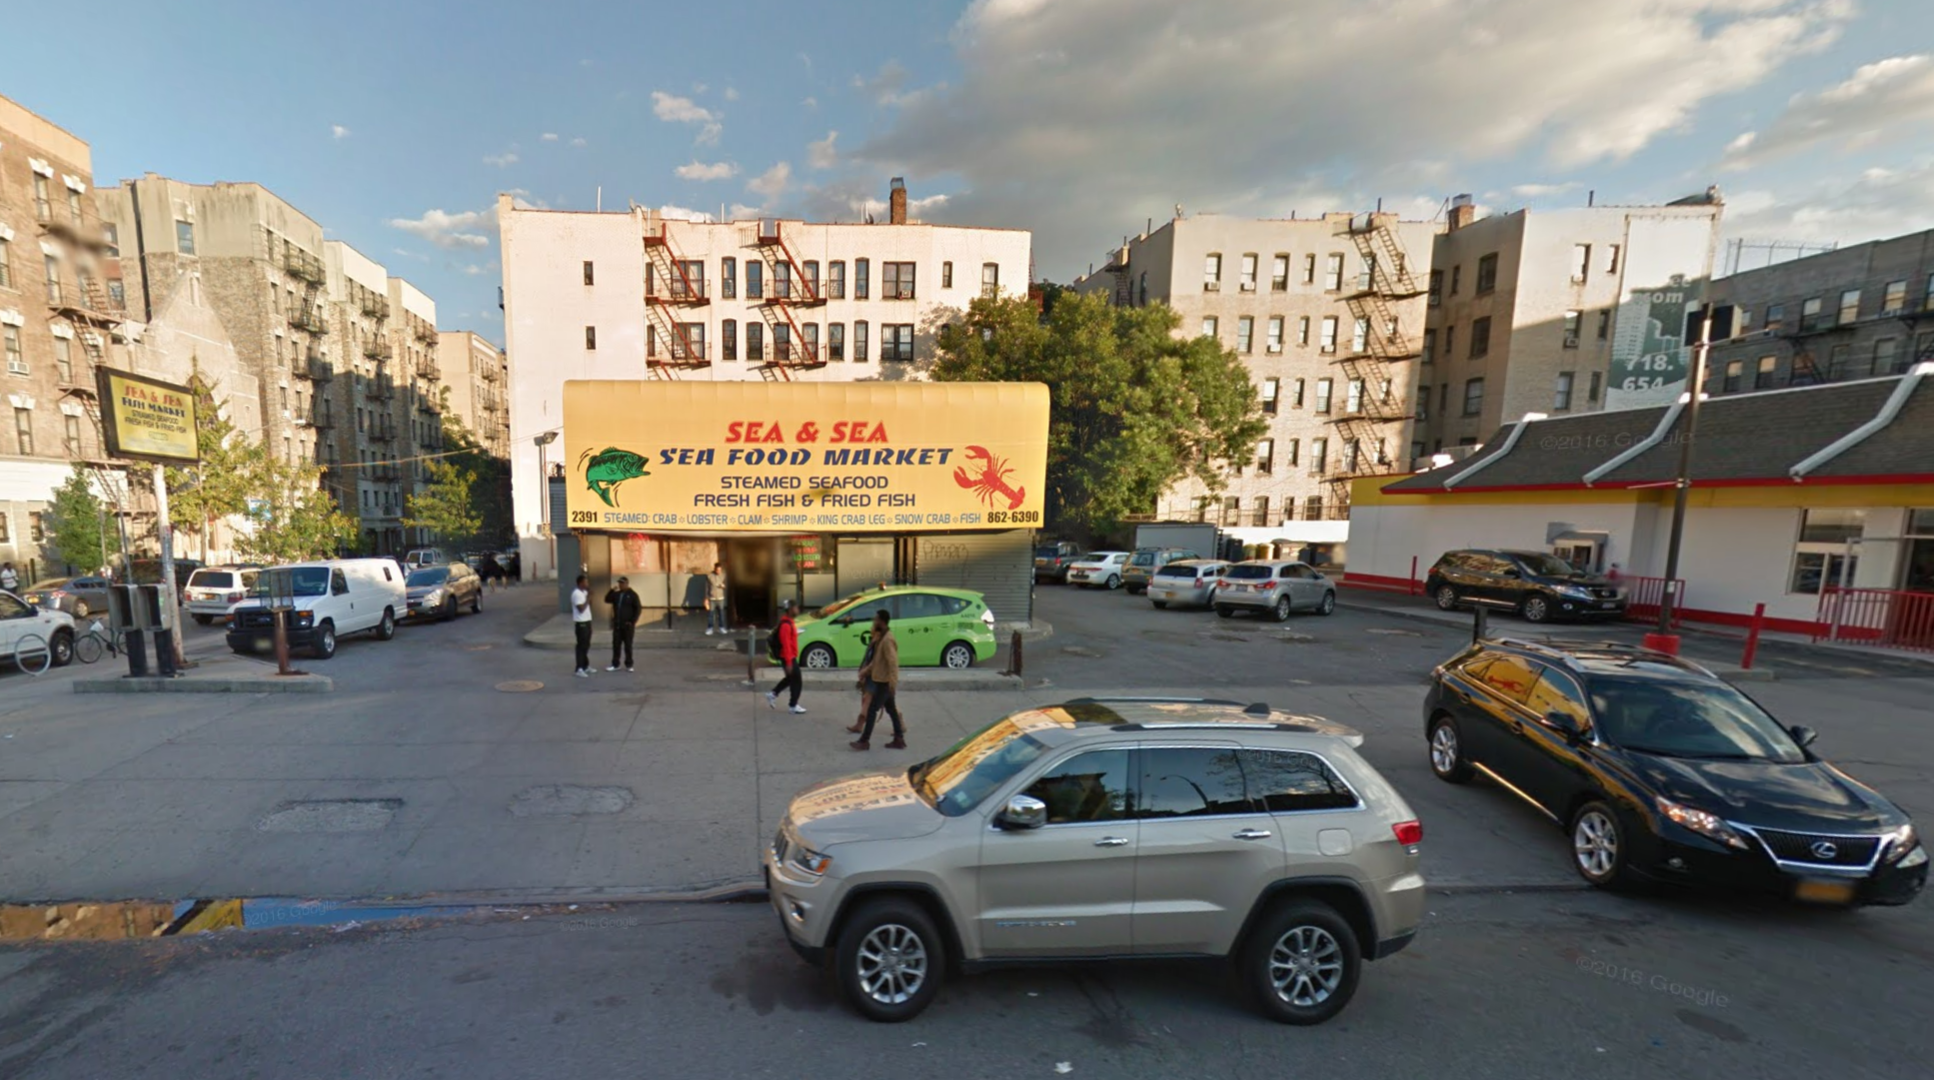 152 West 140th Street, image via Google Maps